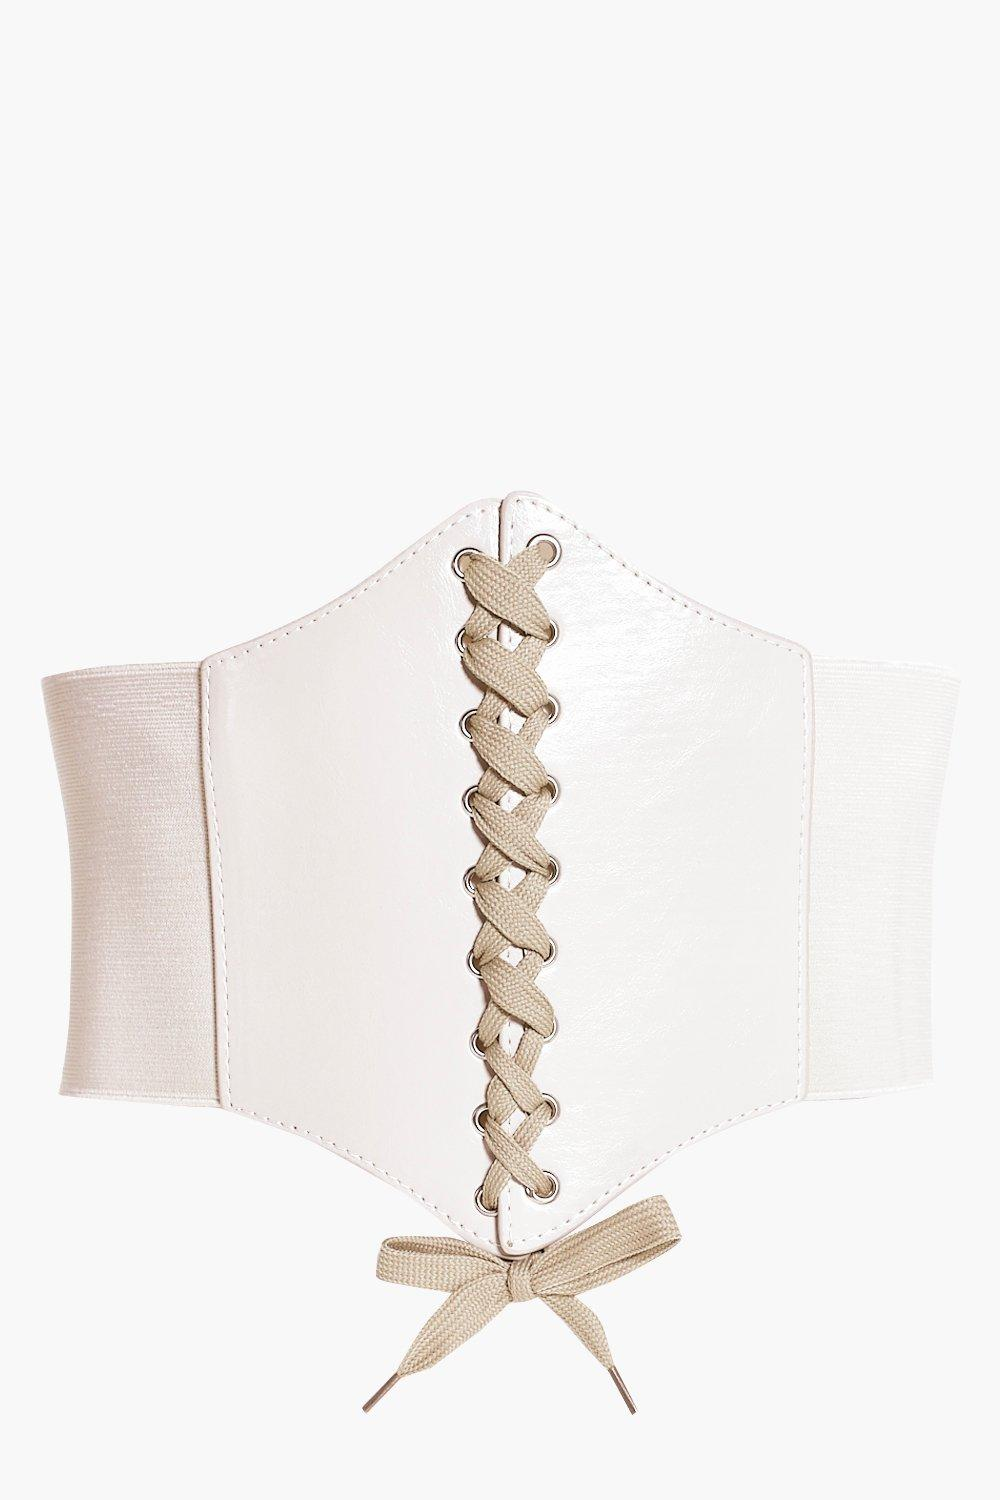 Nude Lace Up Corset Belt - nude - Tilly Nude Lace